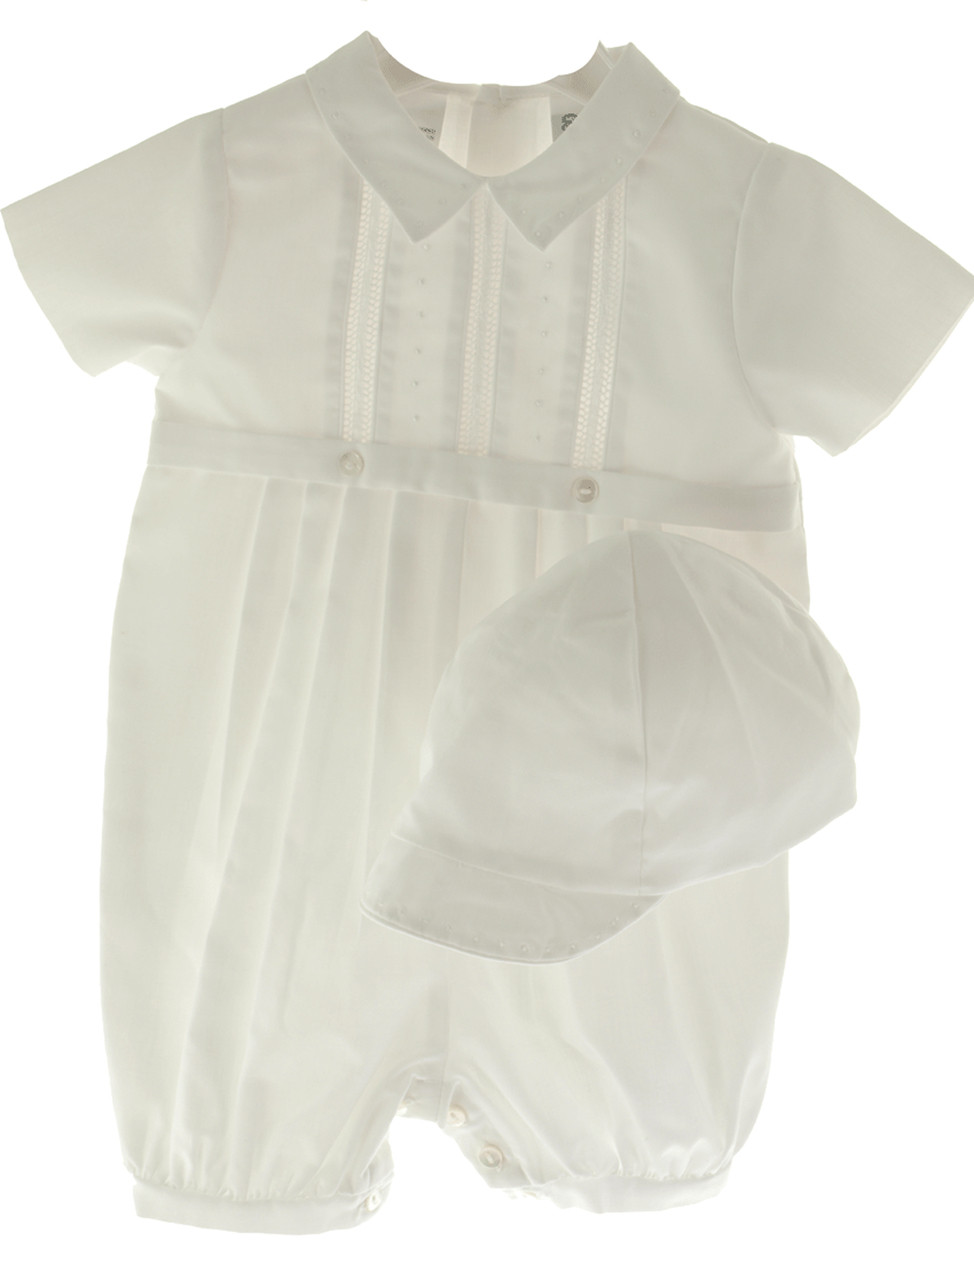 8f487ee3 Sarah Louise Boys White Christening Romper & Cap - Hiccups Childrens ...